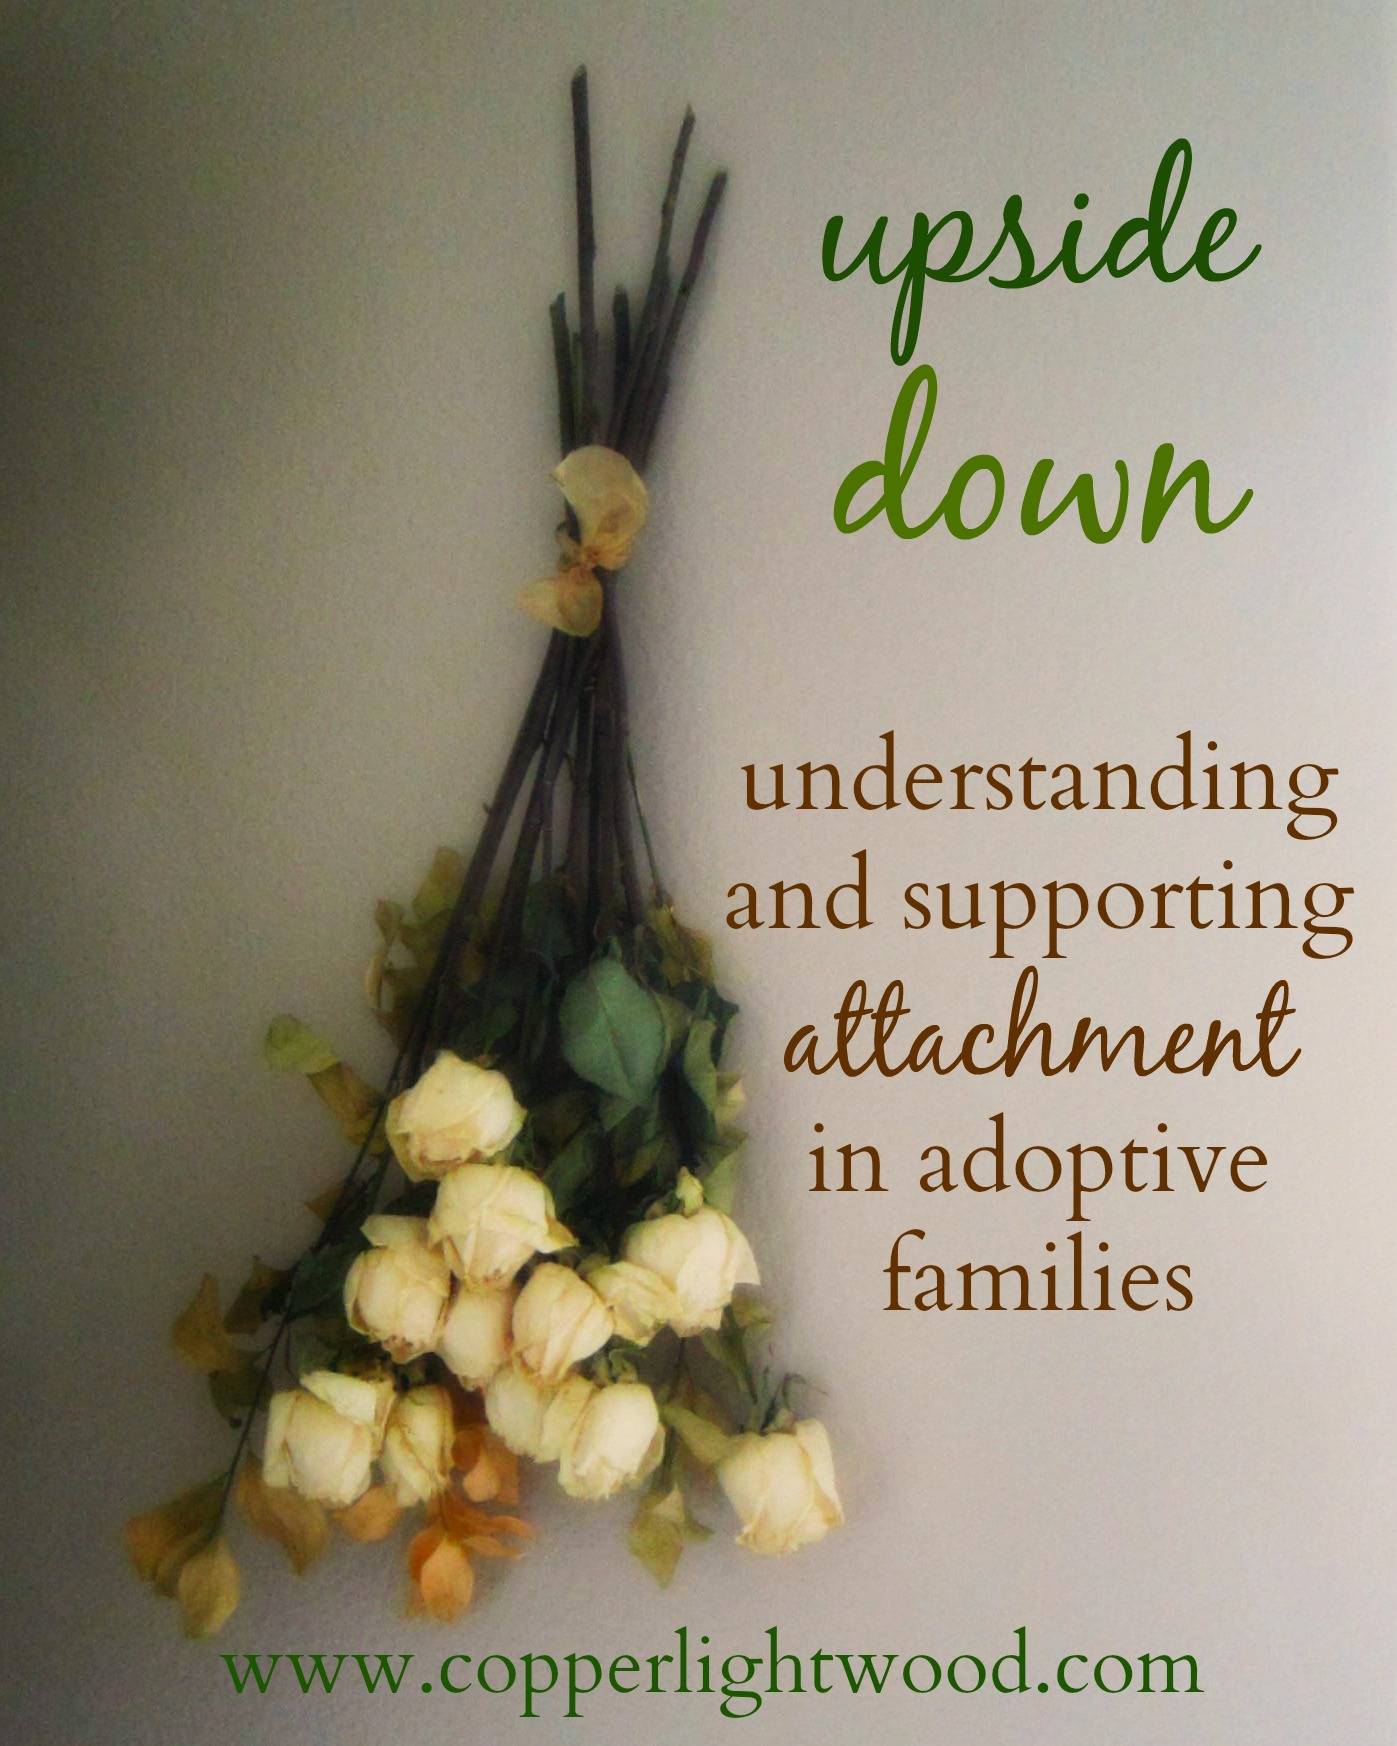 Upside Down Picture Quotes: Upside Down Love Quotes. QuotesGram